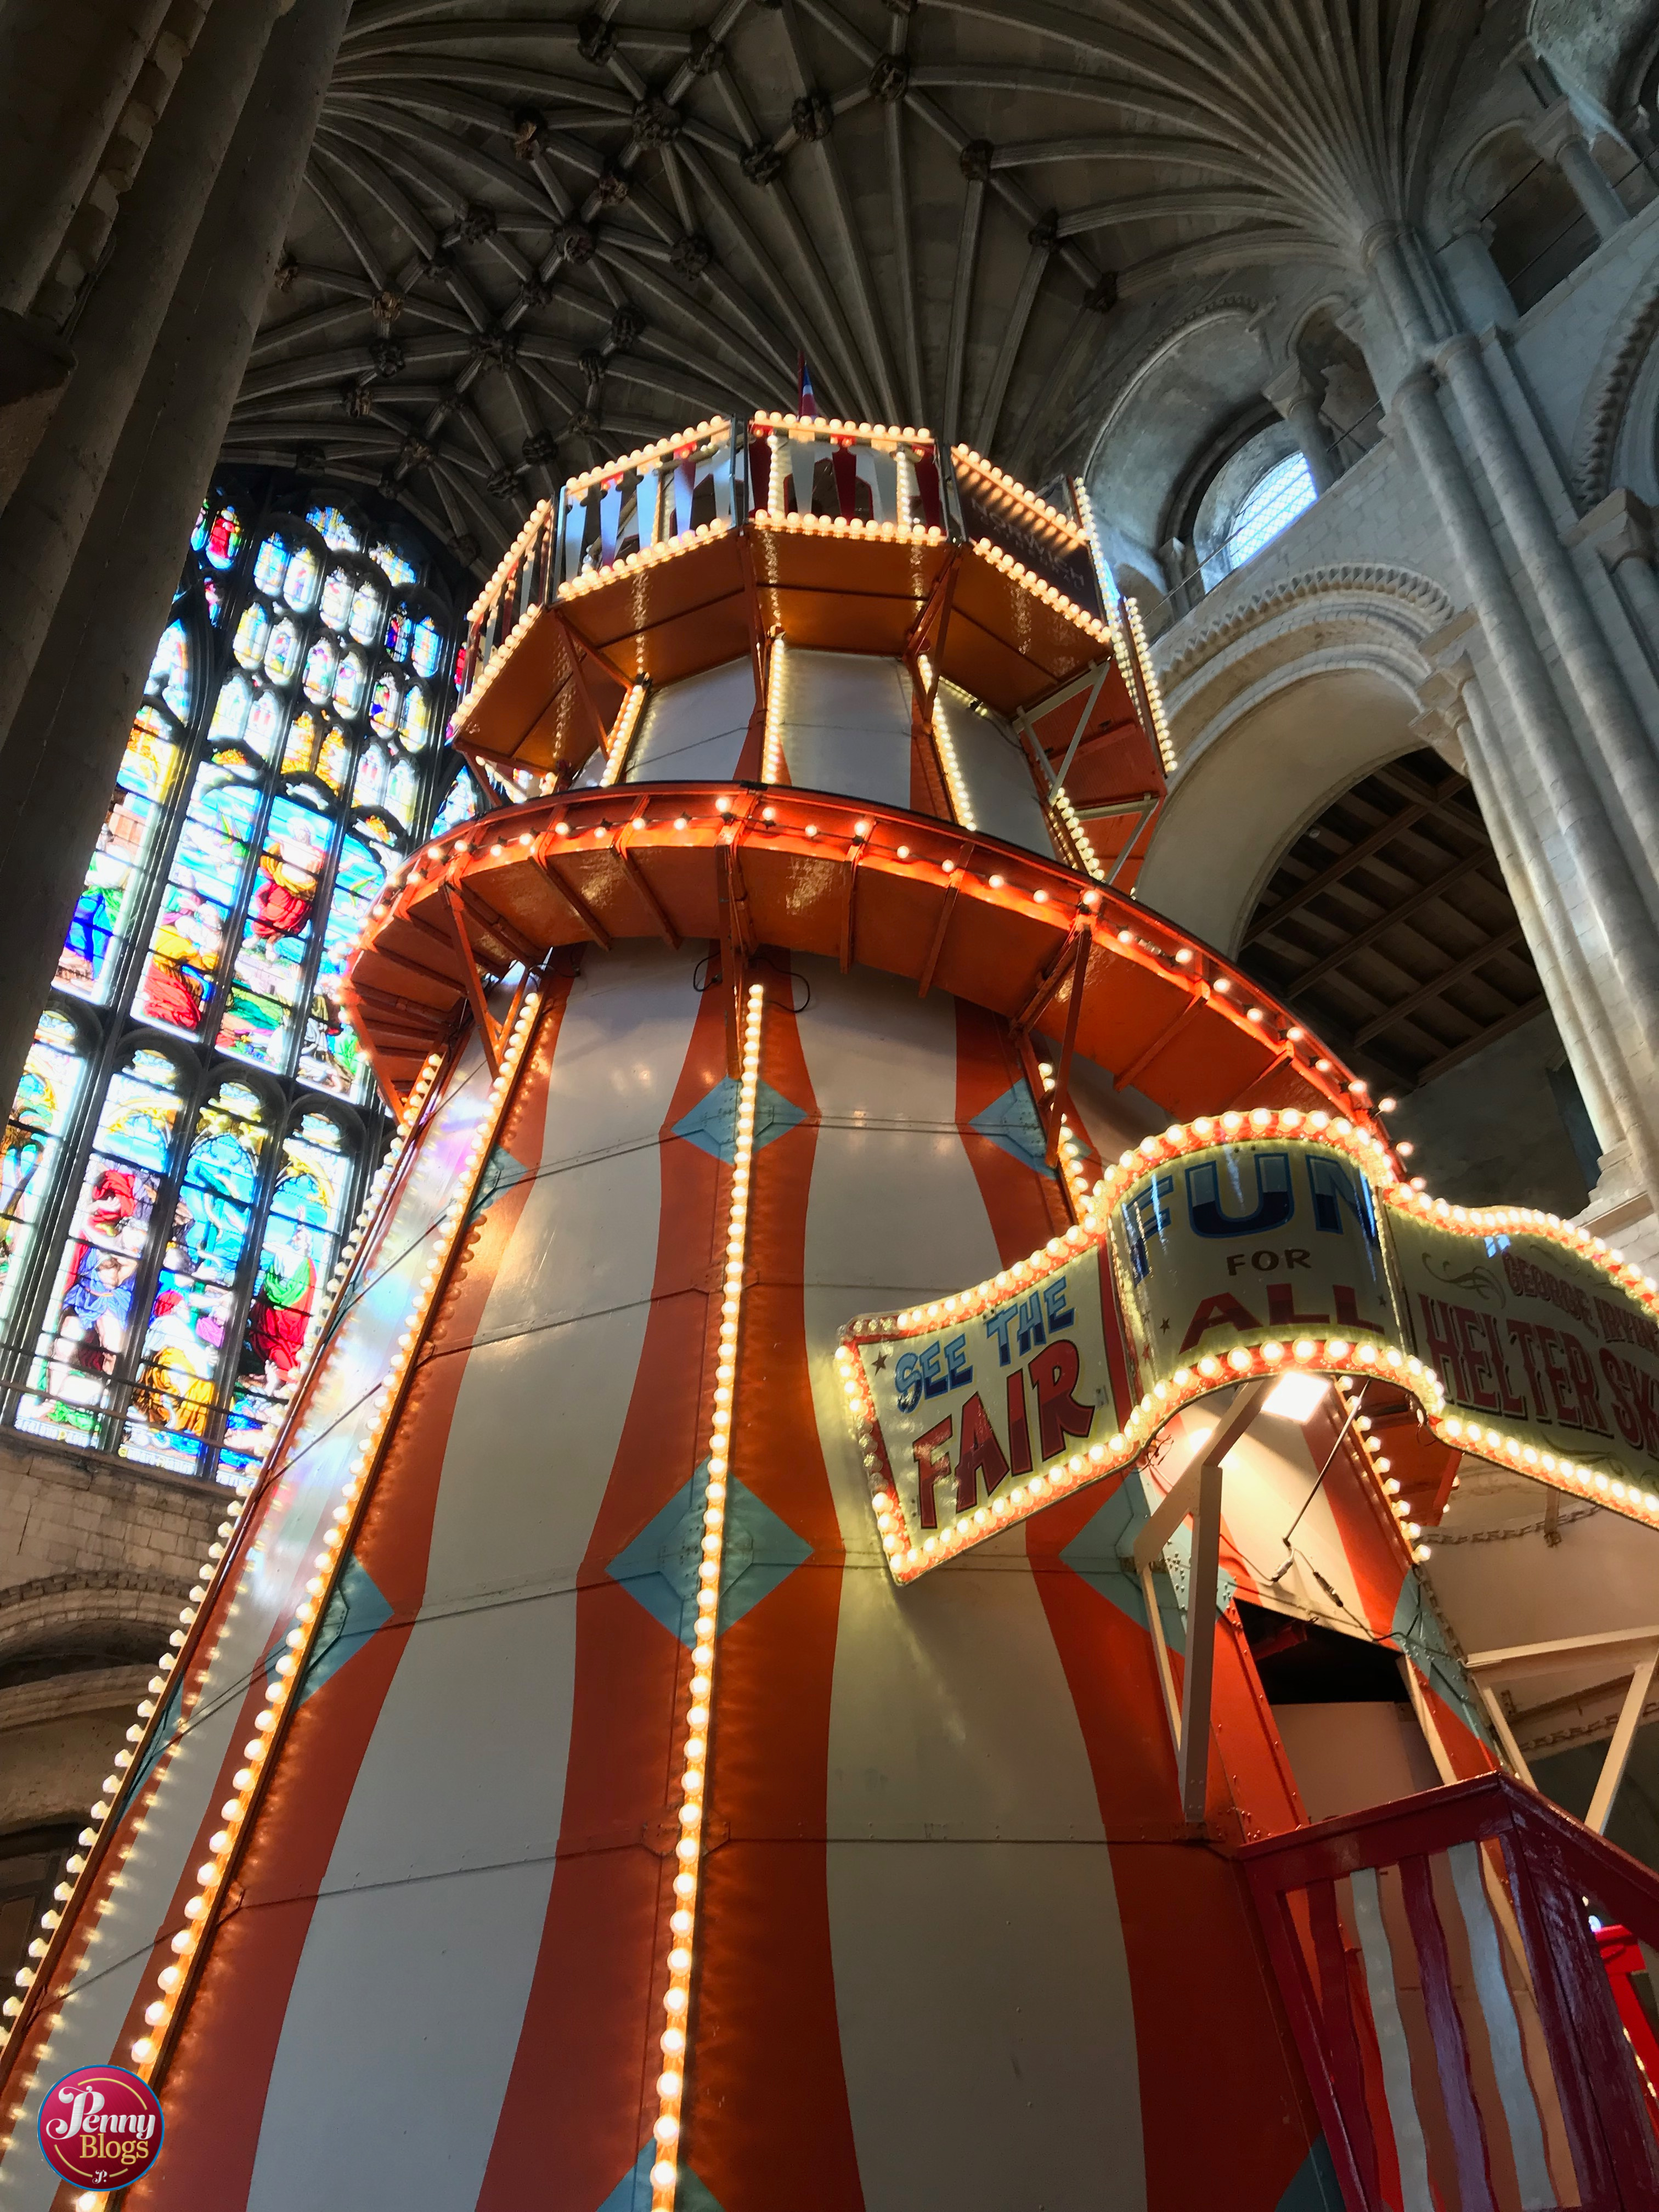 Air Ride Norwich Riding The Helter Skelter At Norwich Cathedral Penny Travels